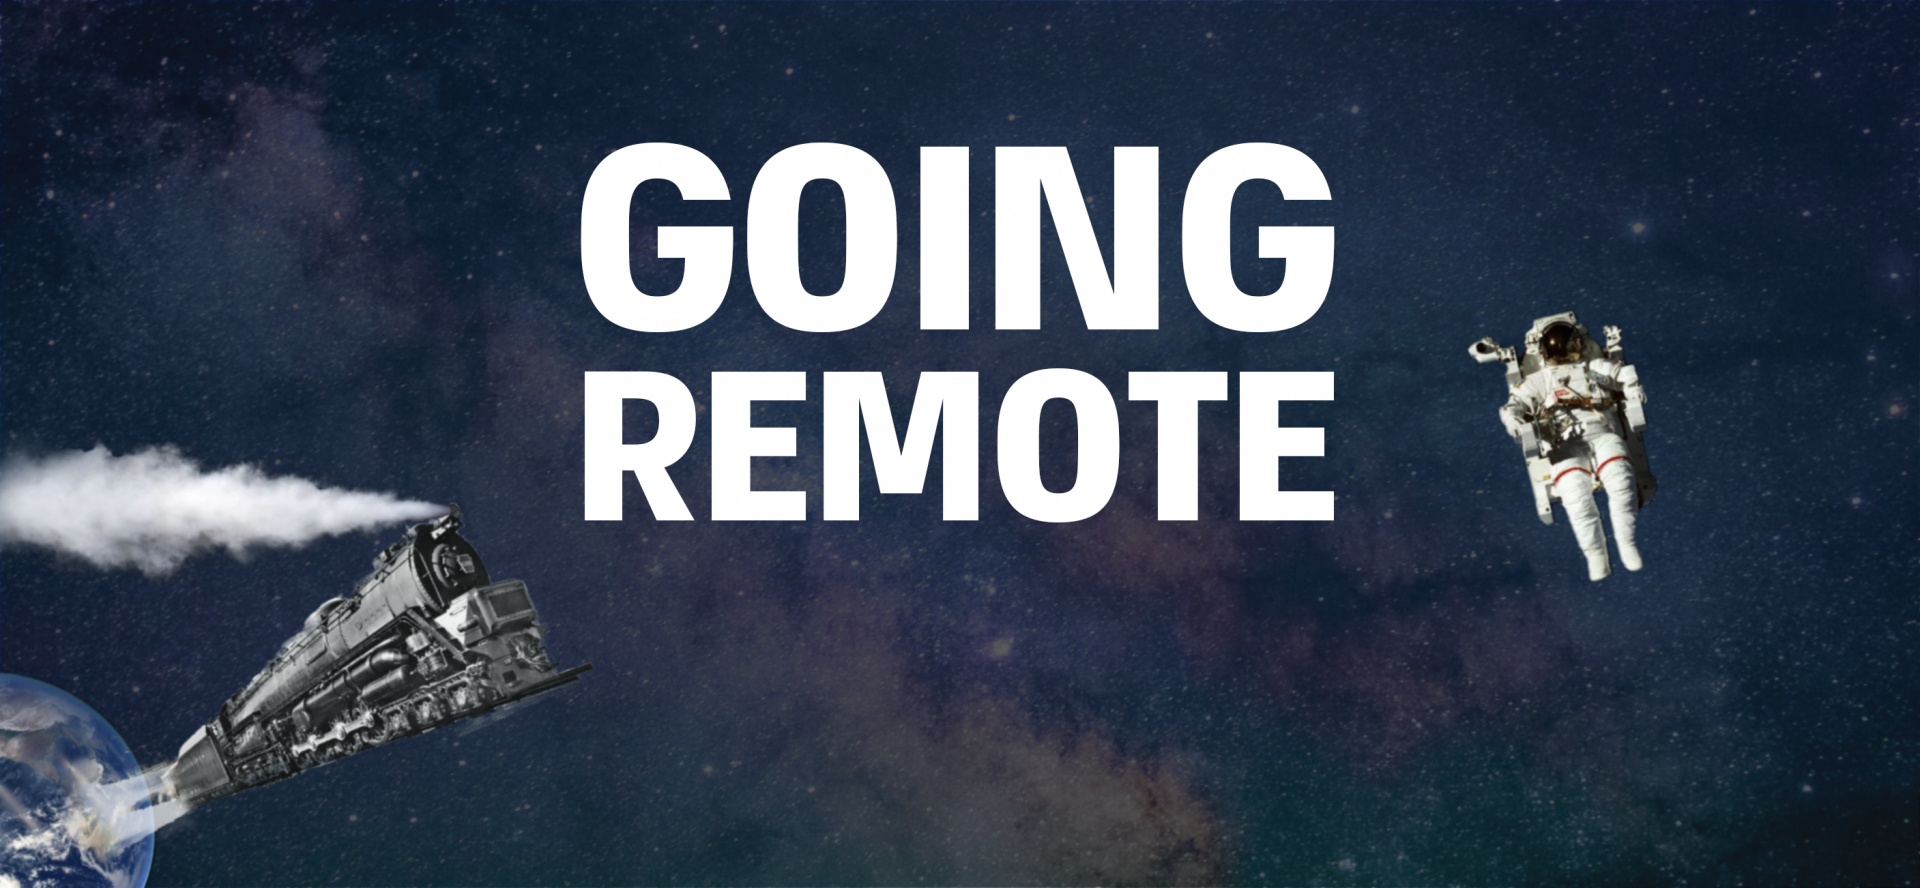 going remote